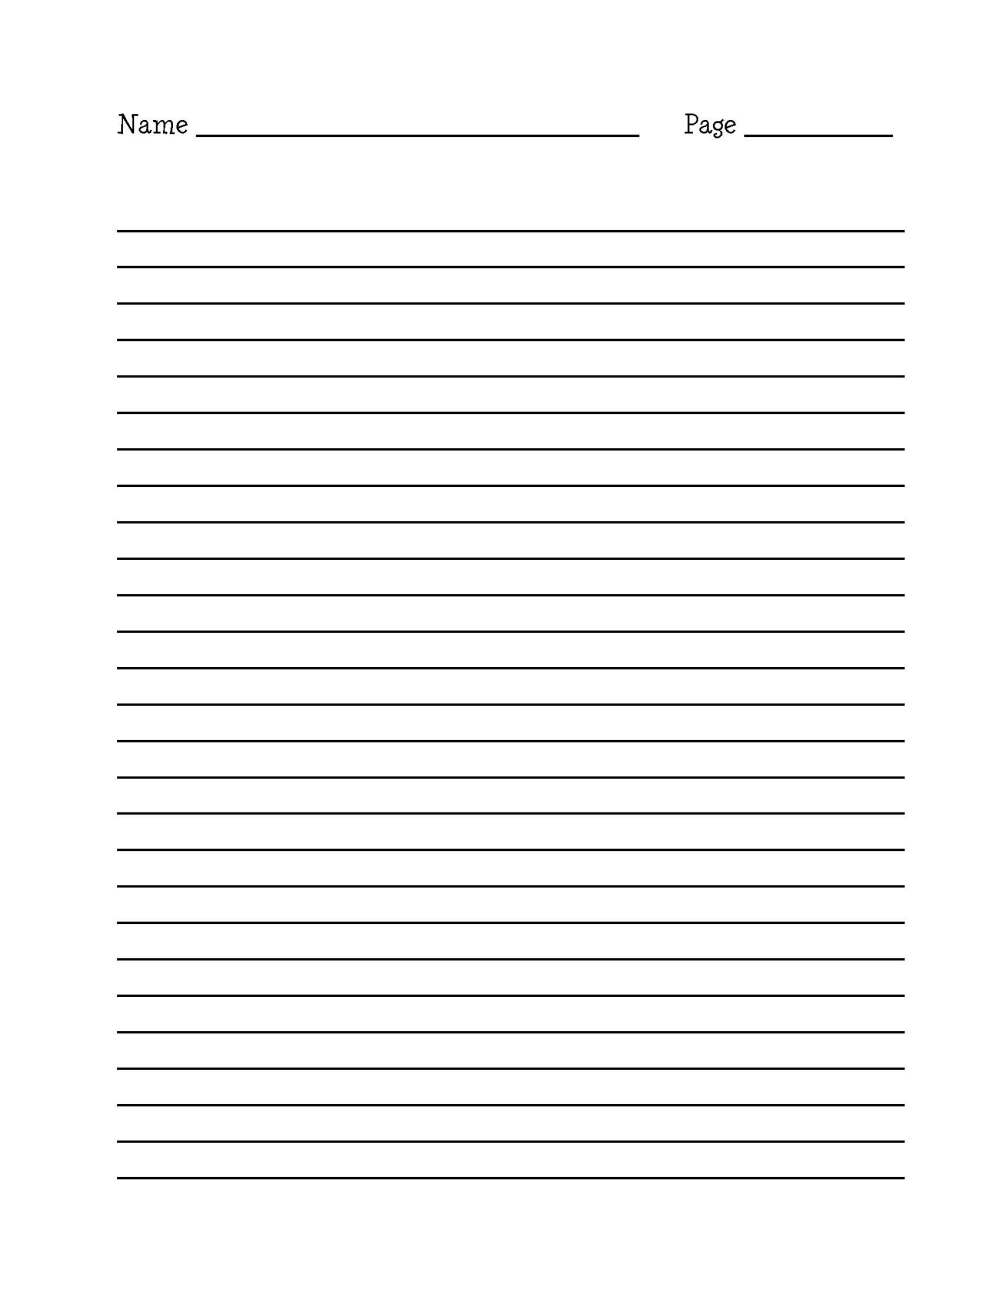 medium resolution of 4th Grade Essay Writing Worksheets   Printable Worksheets and Activities  for Teachers